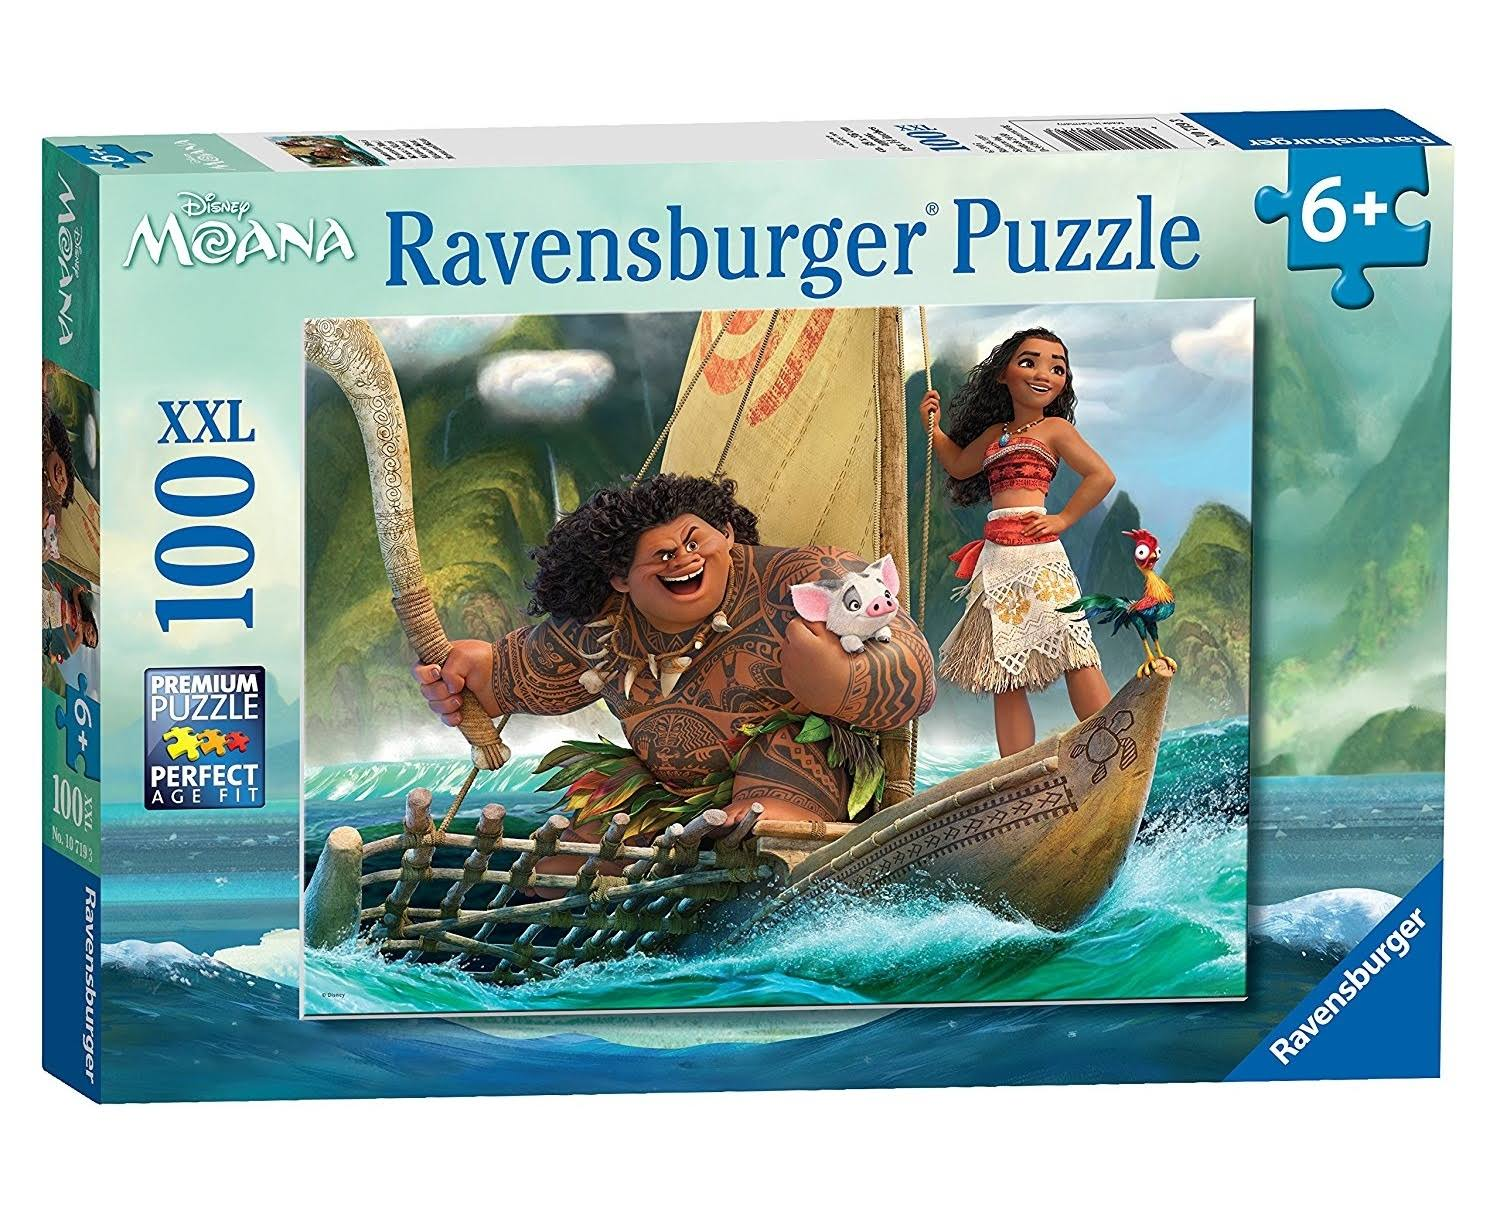 Ravensburger Disney Moana Puzzle - 100 Pieces